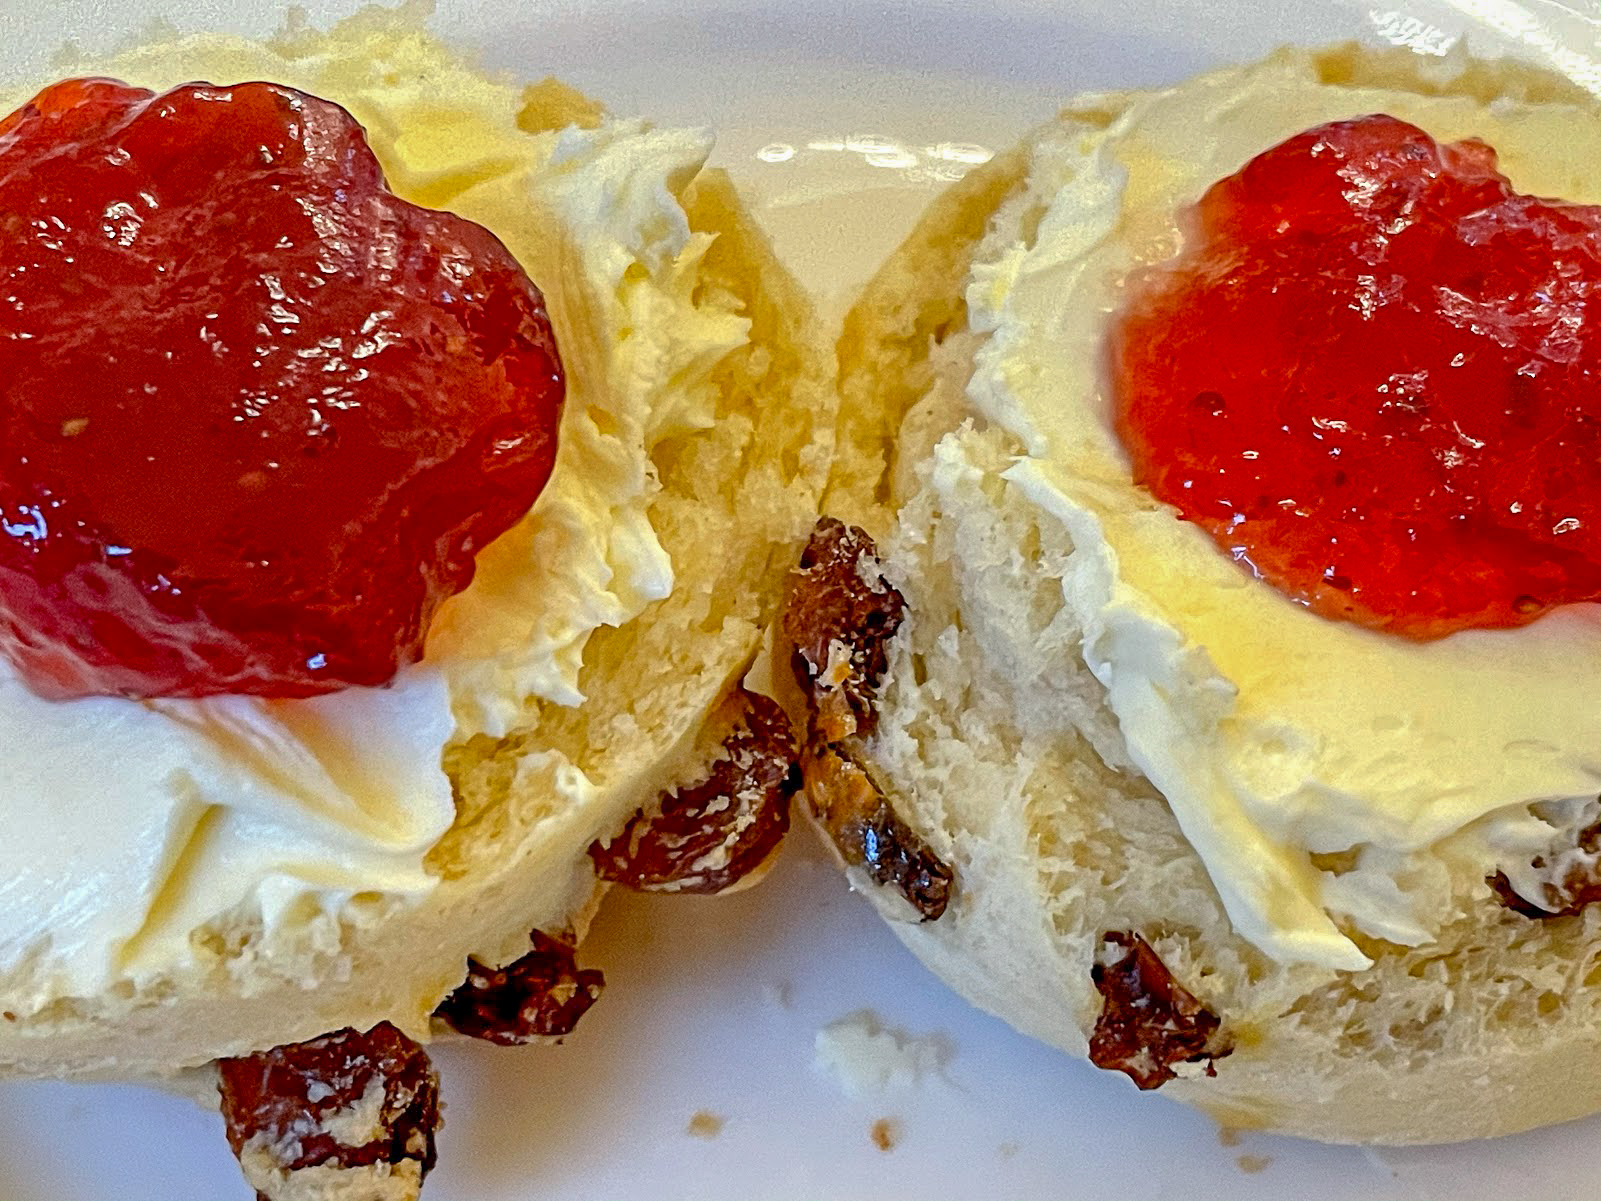 close up of a scone with Dorset clotted cream, topped with strawberry jam